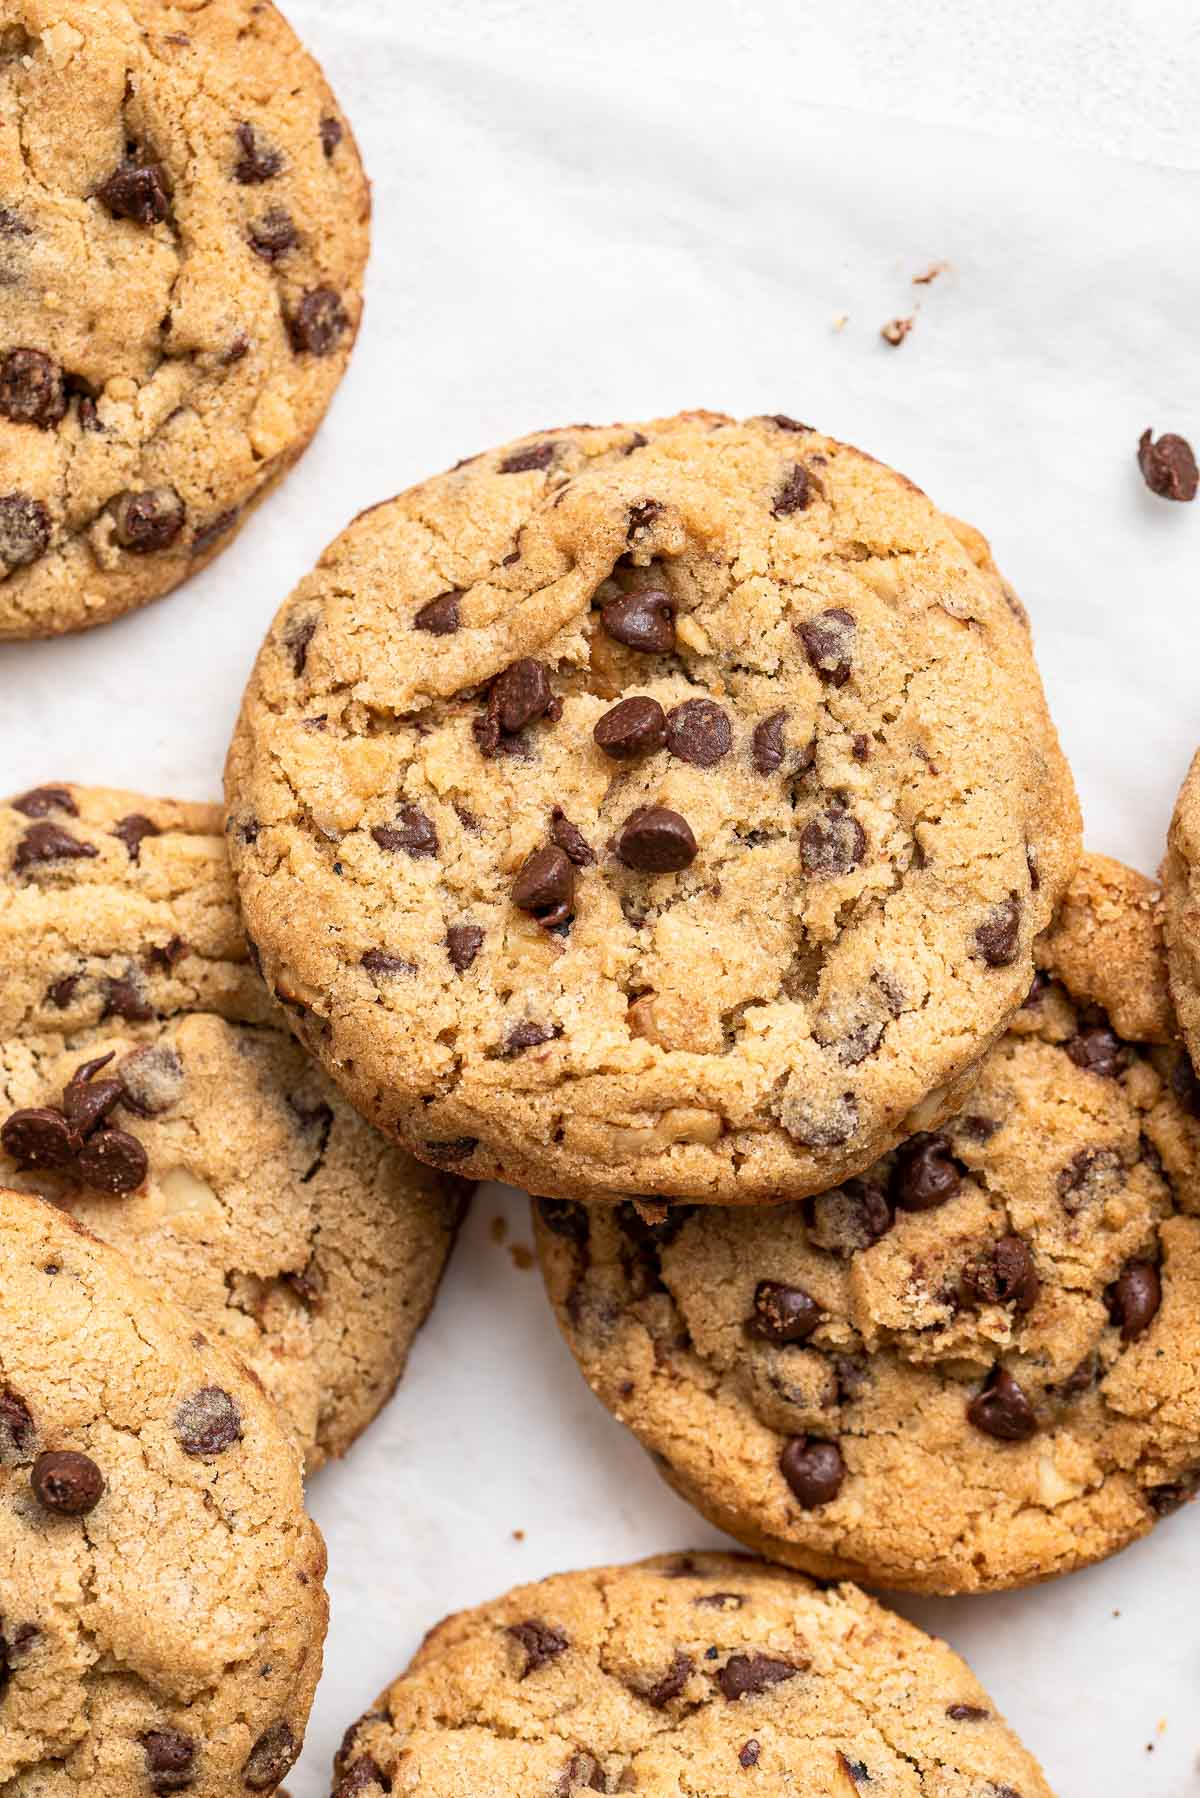 Cookie close up with chocolate chips and walnuts.